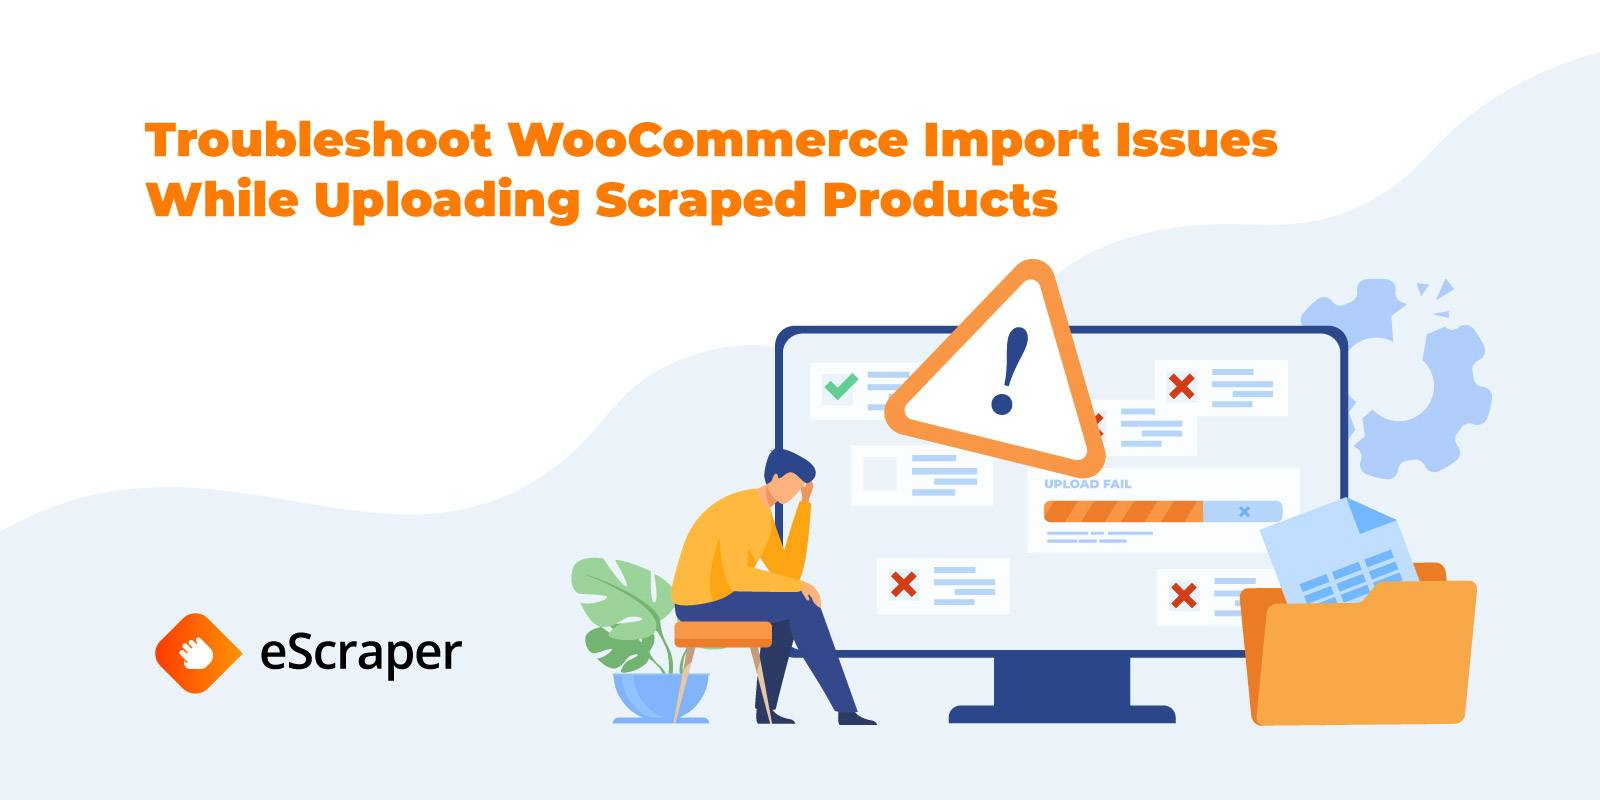 Troubleshooting WooCommerce Import Issues